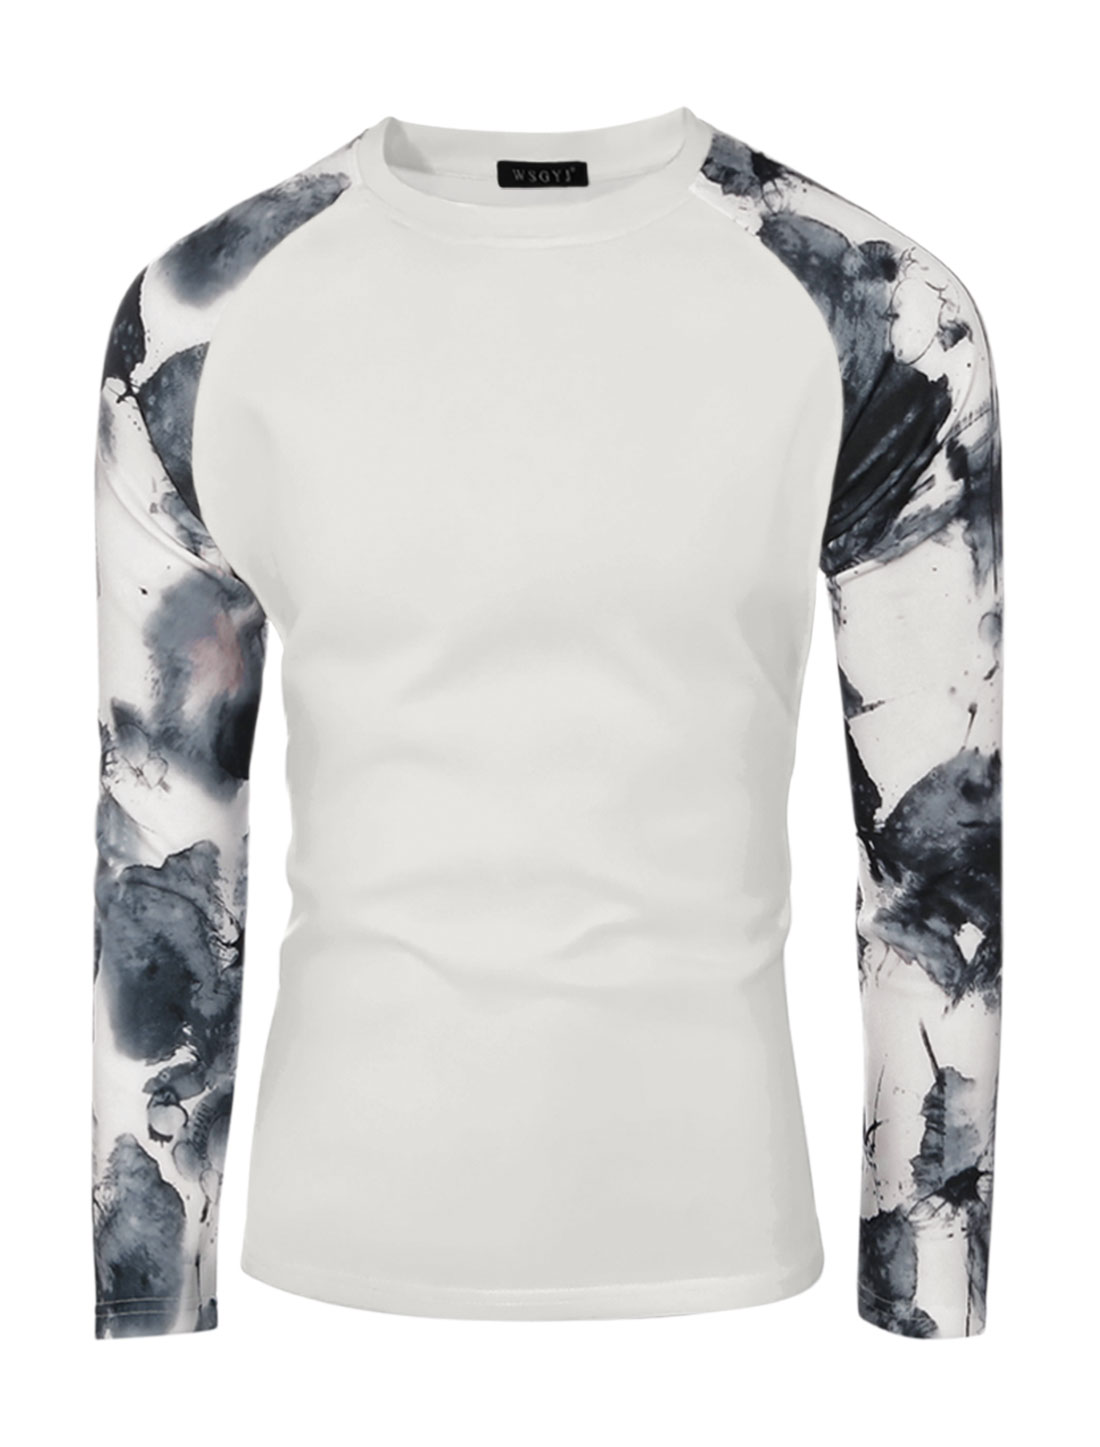 Men Novelty Prints Round Neck Long Sleeves Slim Fit T-shirt White S